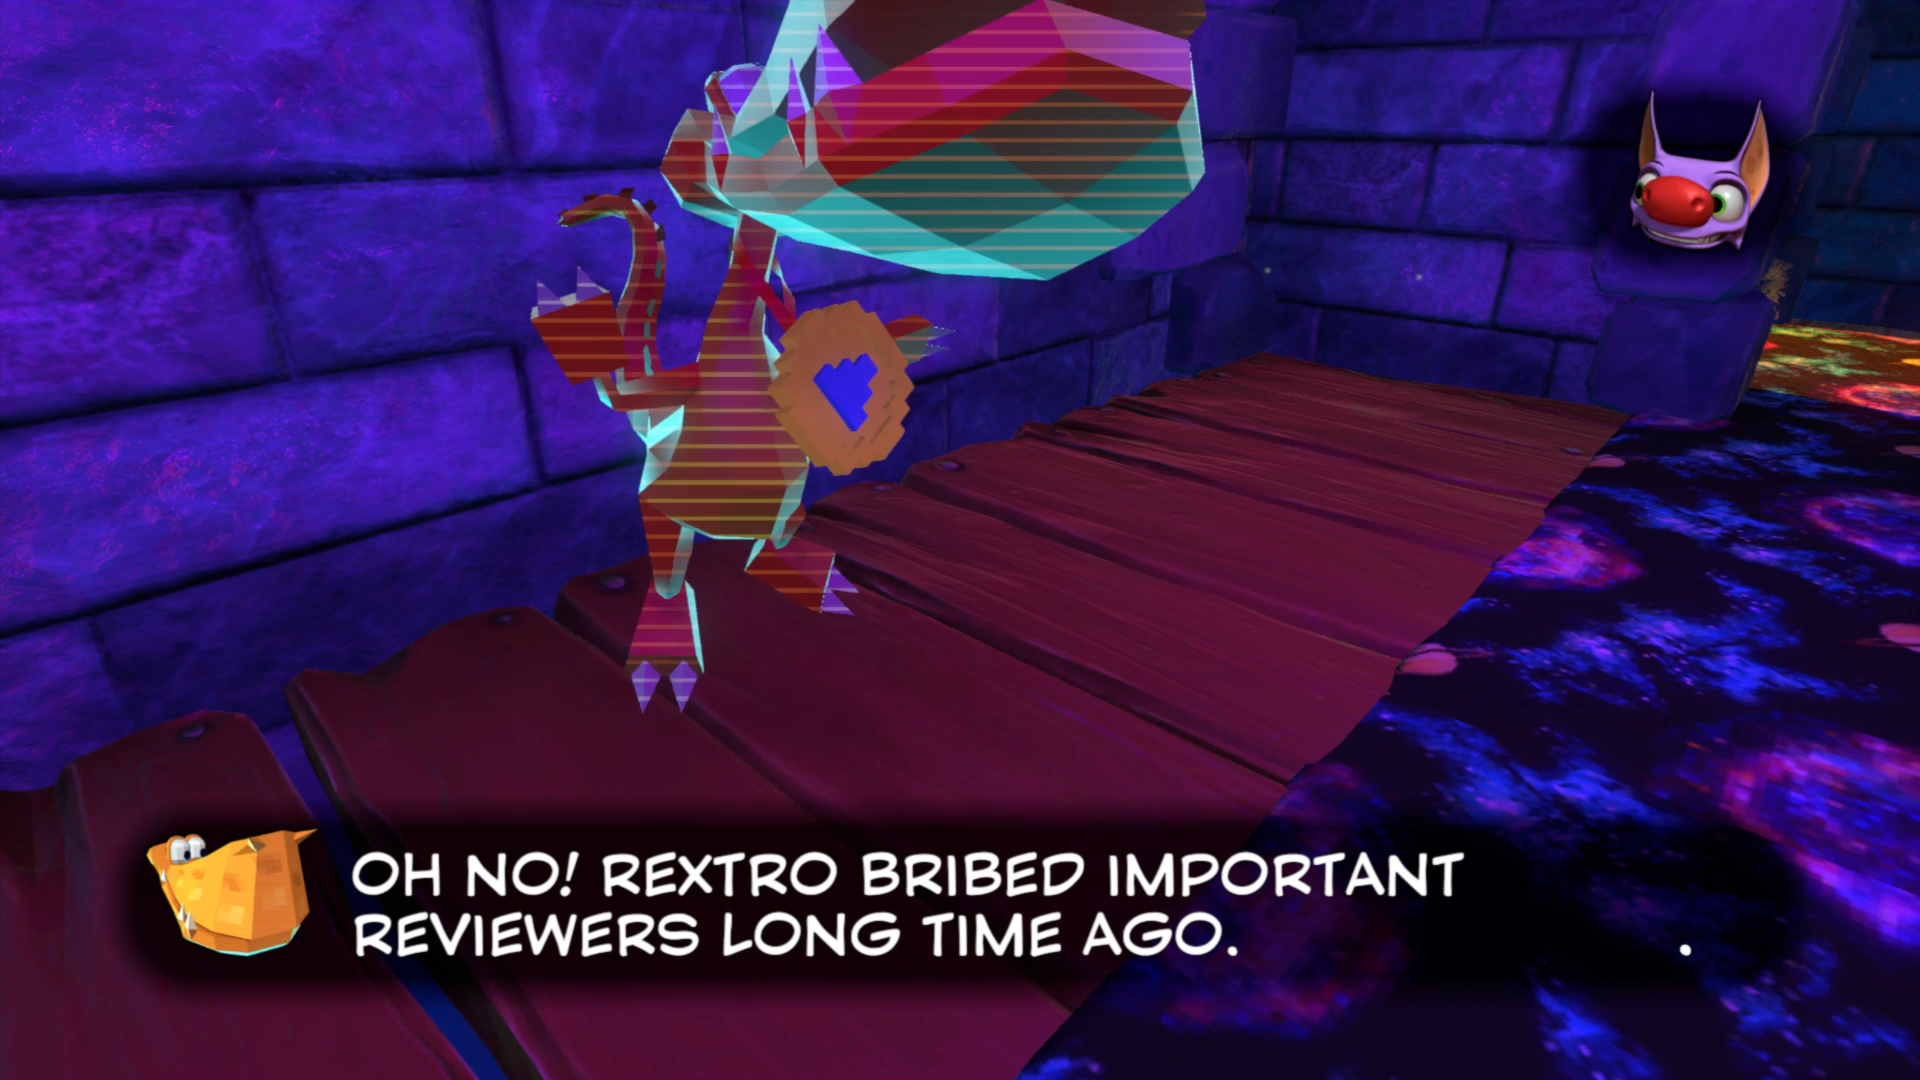 yooka-laylee-bribed-reviewers